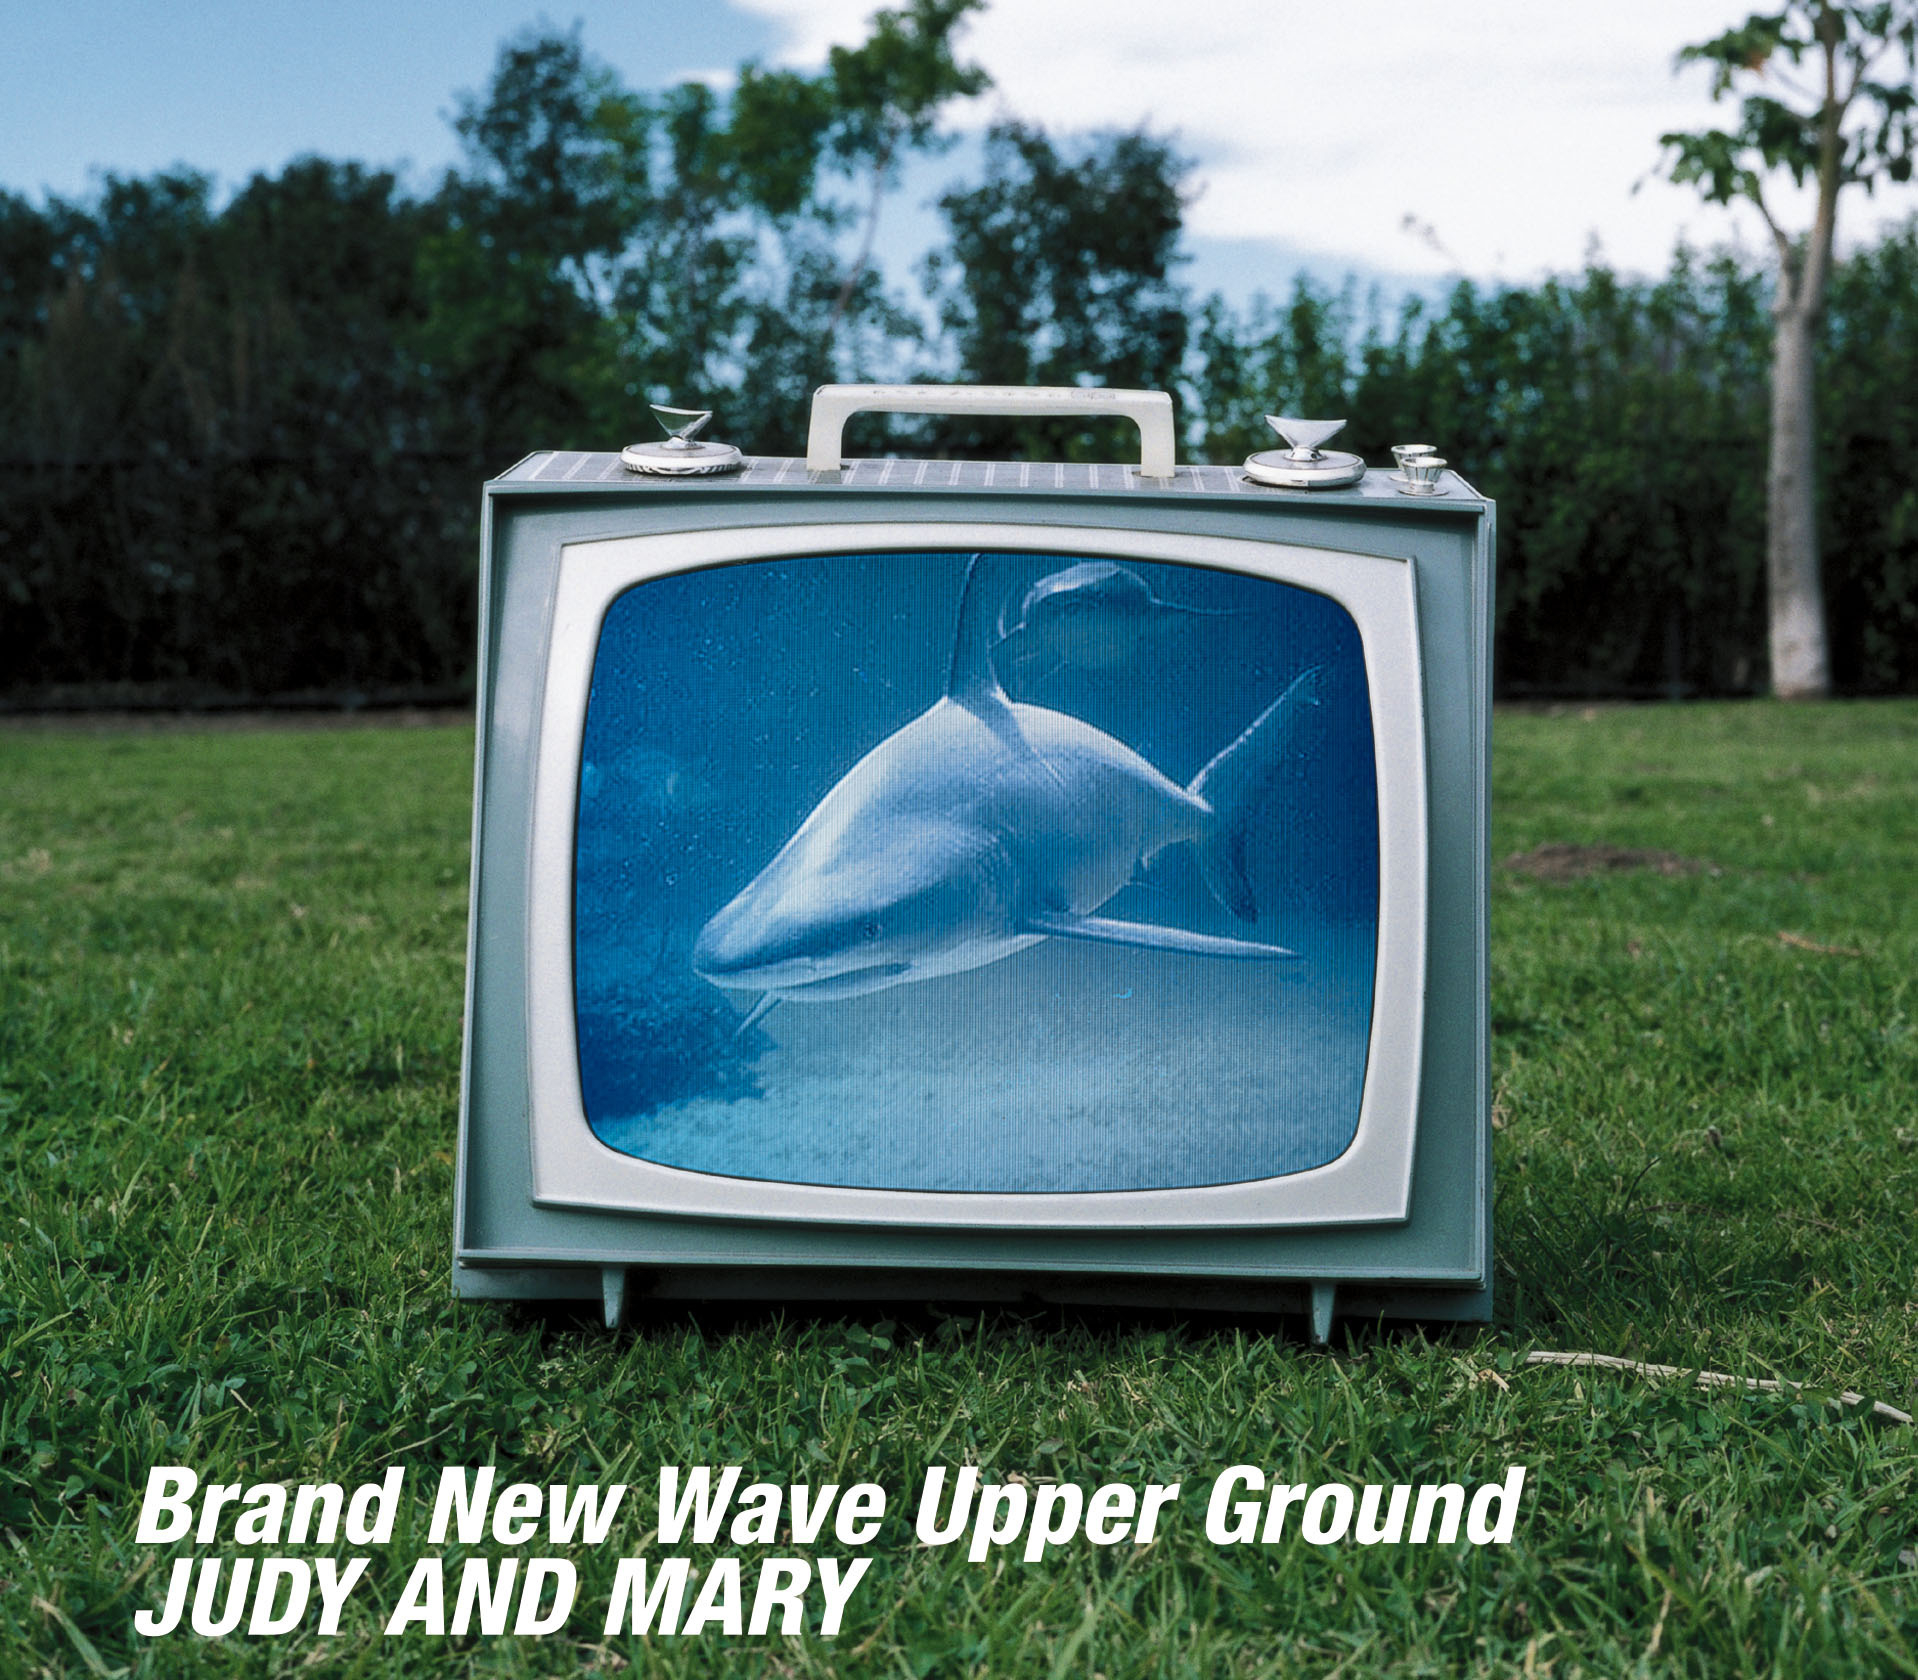 JUDY AND MARY『Brand New Wave Upper Ground』高画質ジャケット画像